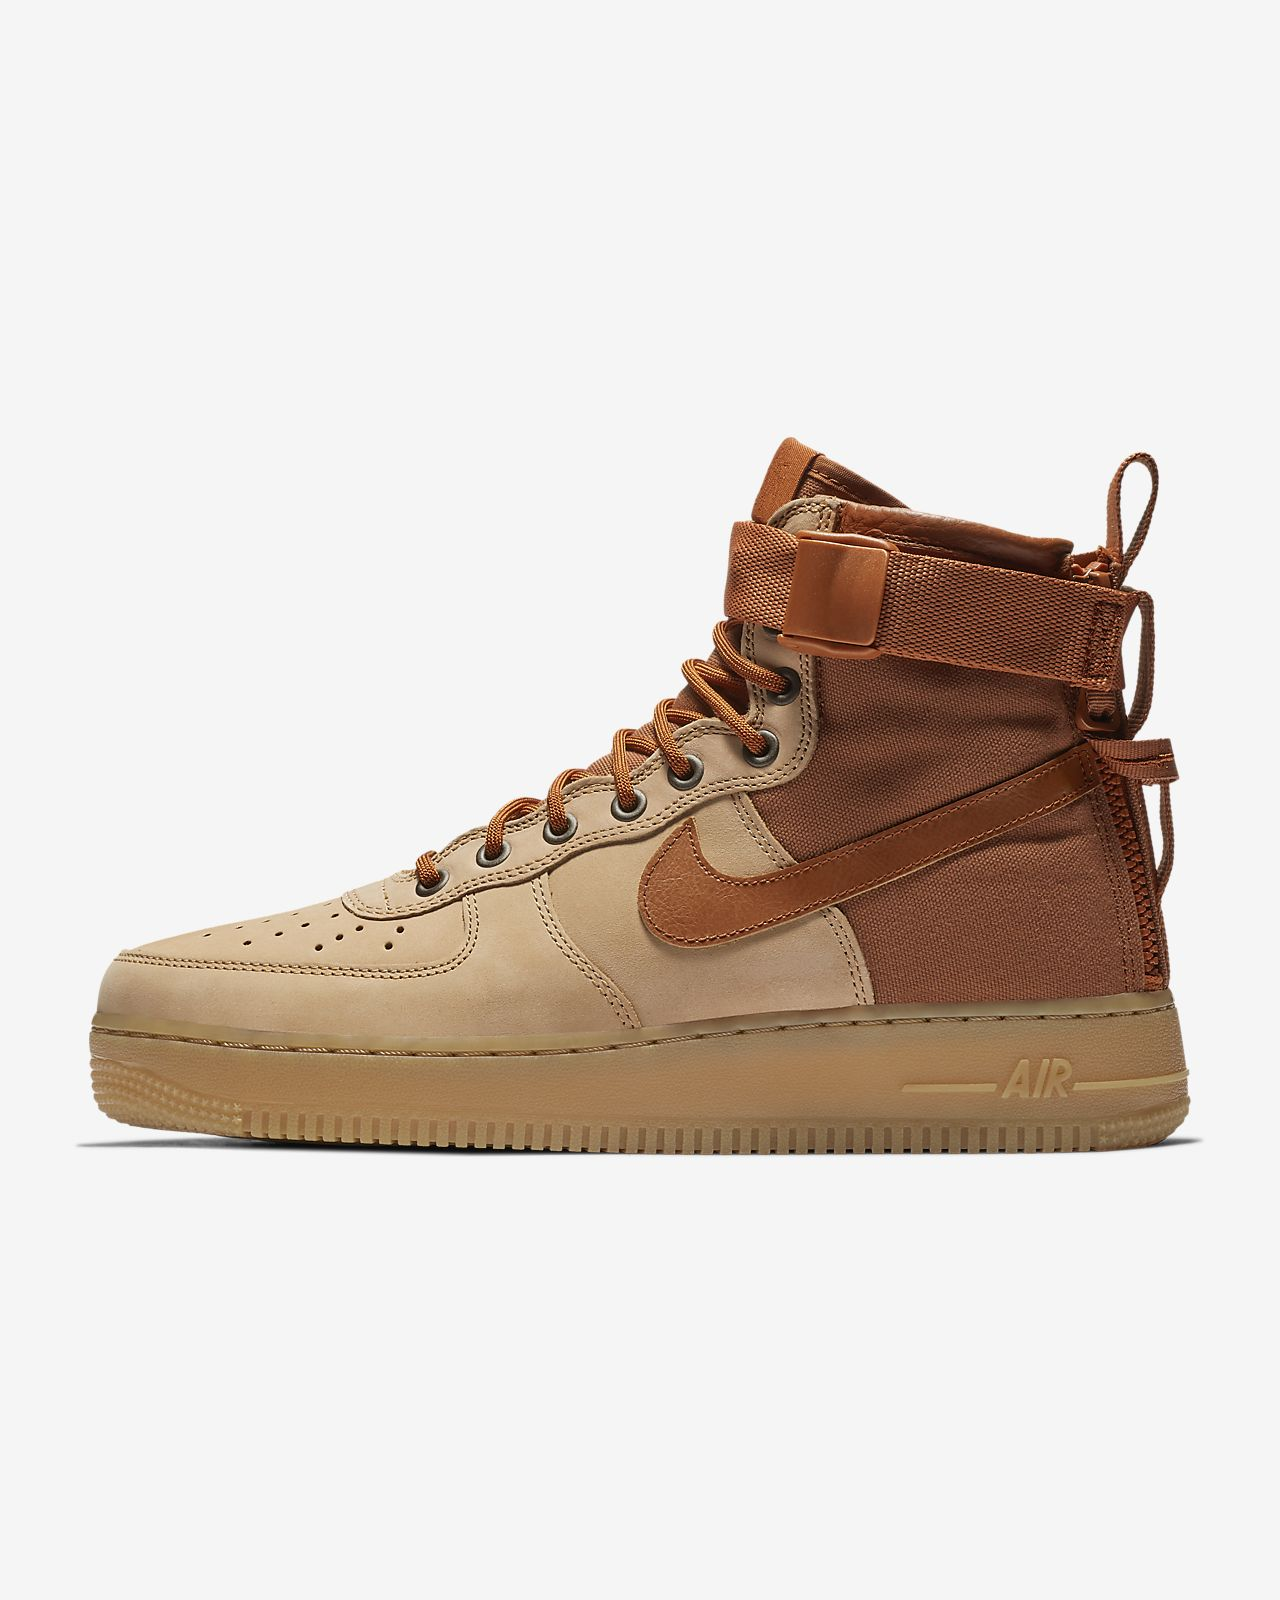 new style 23a3f b6e81 Nike SF Air Force 1 Mid Premium